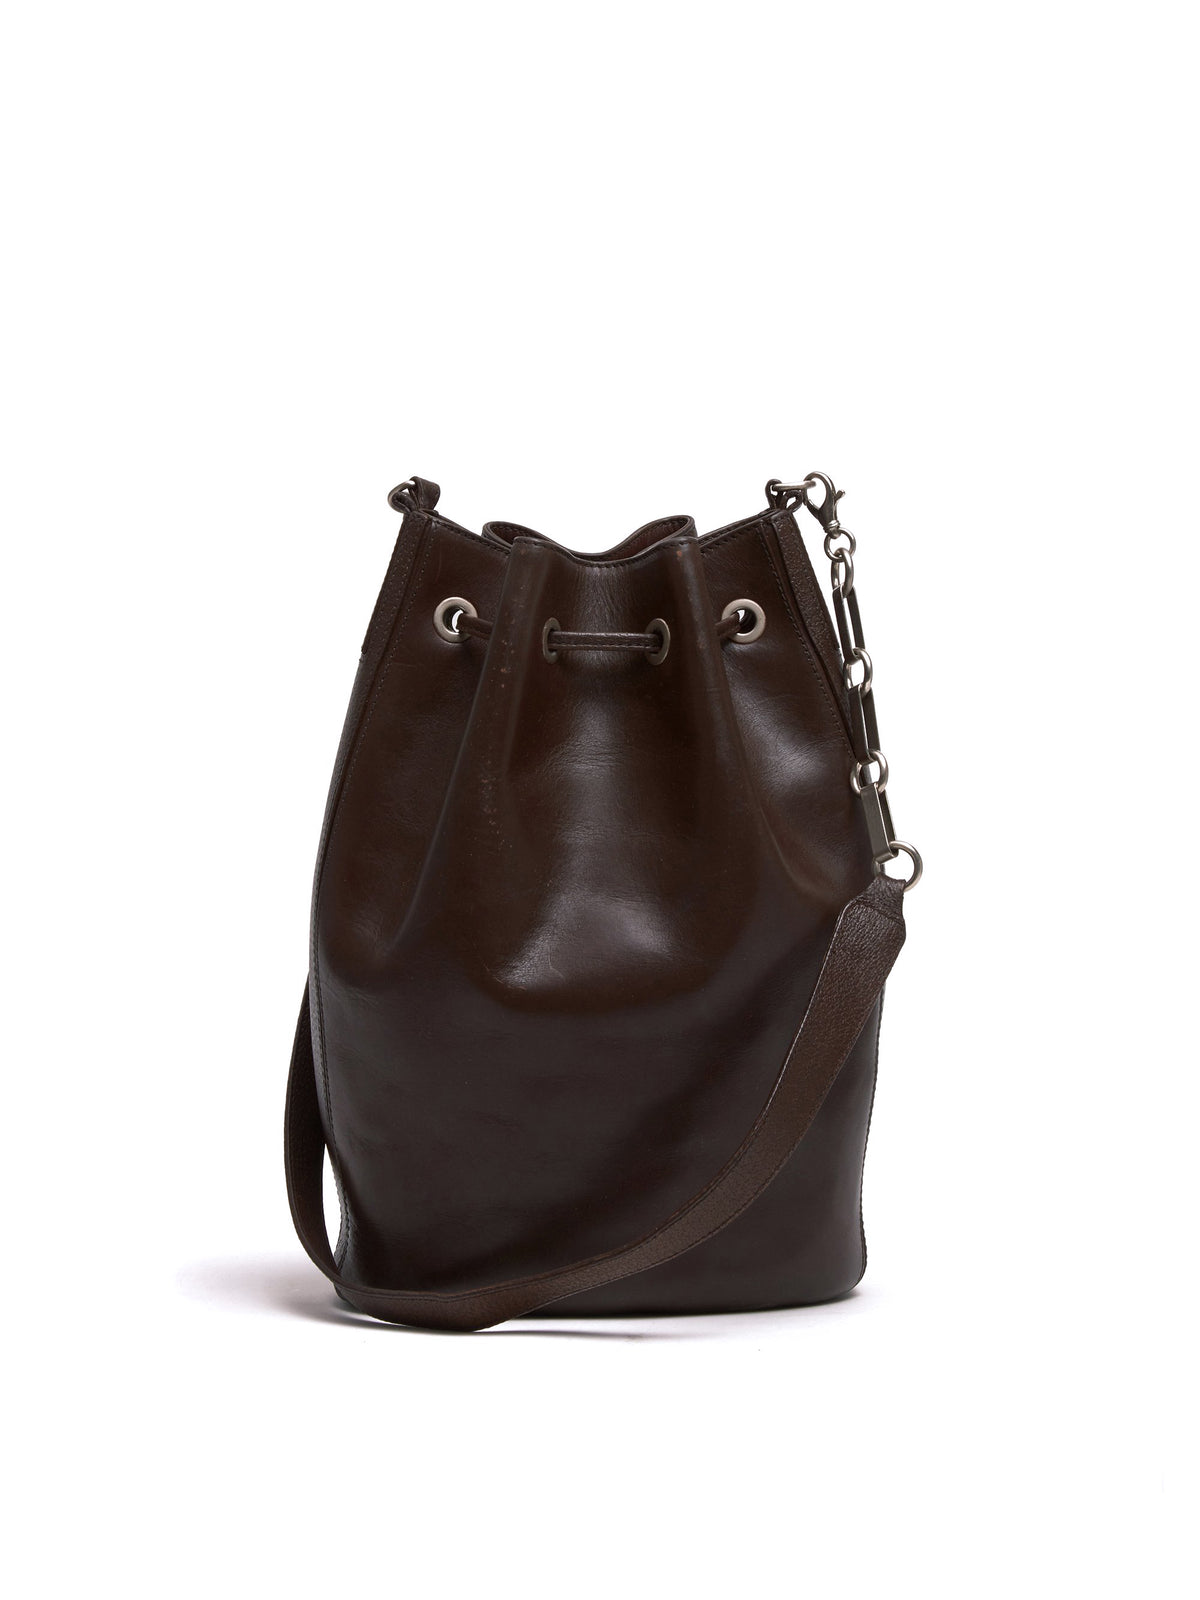 Mark Cross Vintage Leather Bucket Bag Chocolate Back